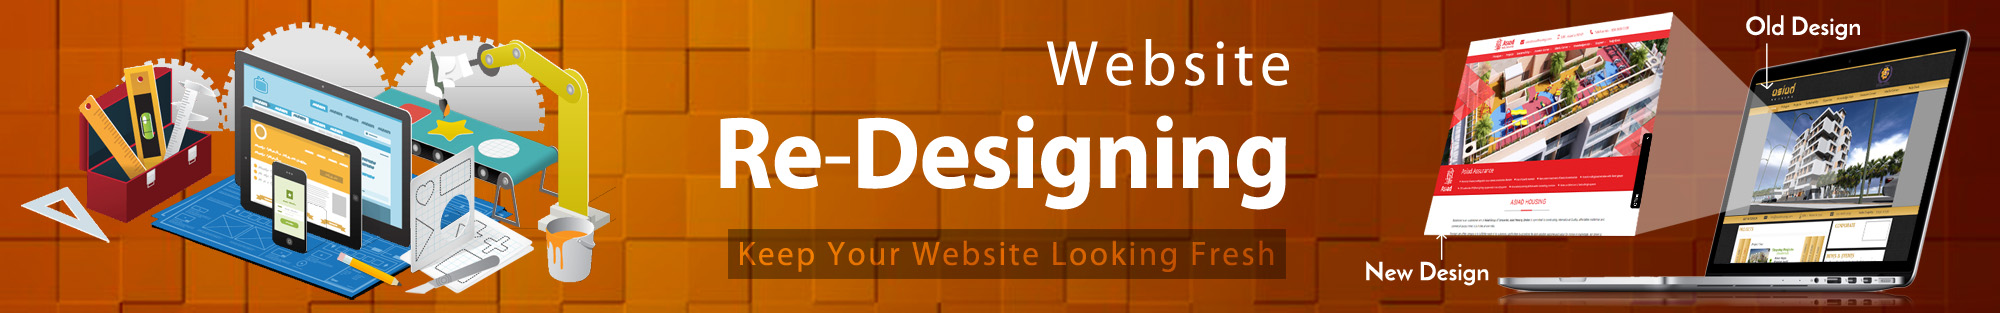 website revamp in Mumbai | Website redesign company in india